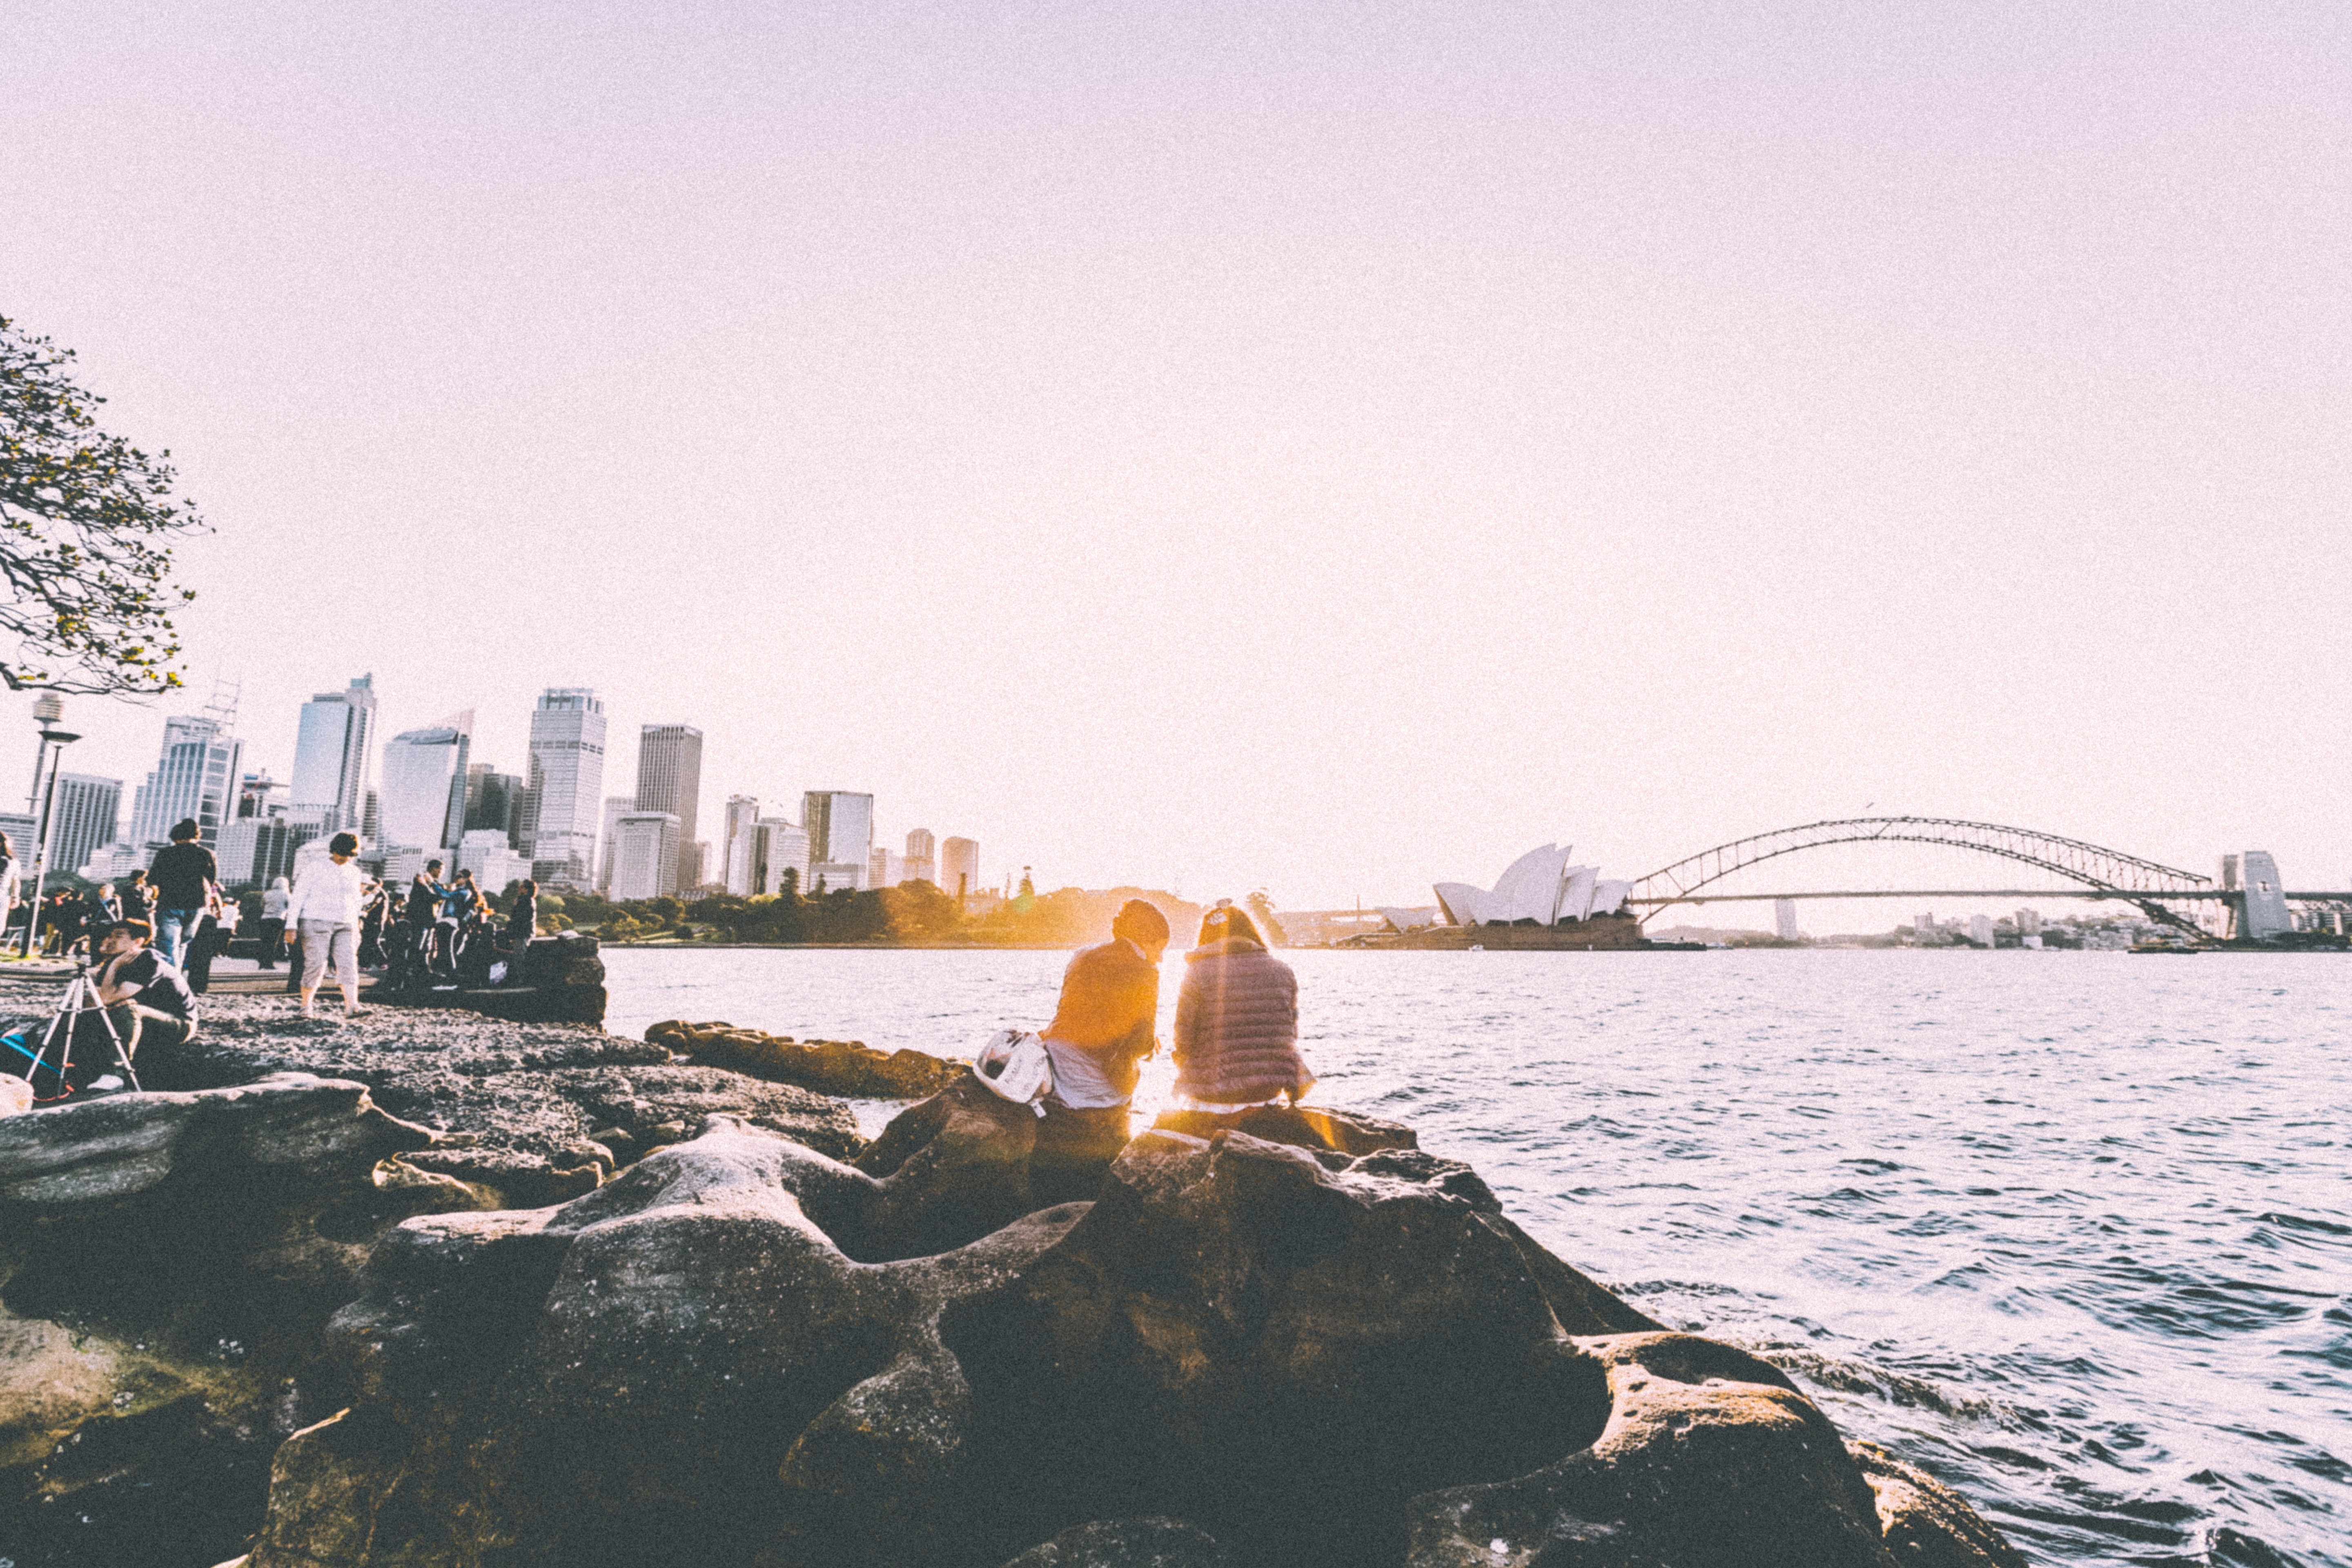 People hanging out by the rocky shores overlooking the Sydney Harbor on a clear day